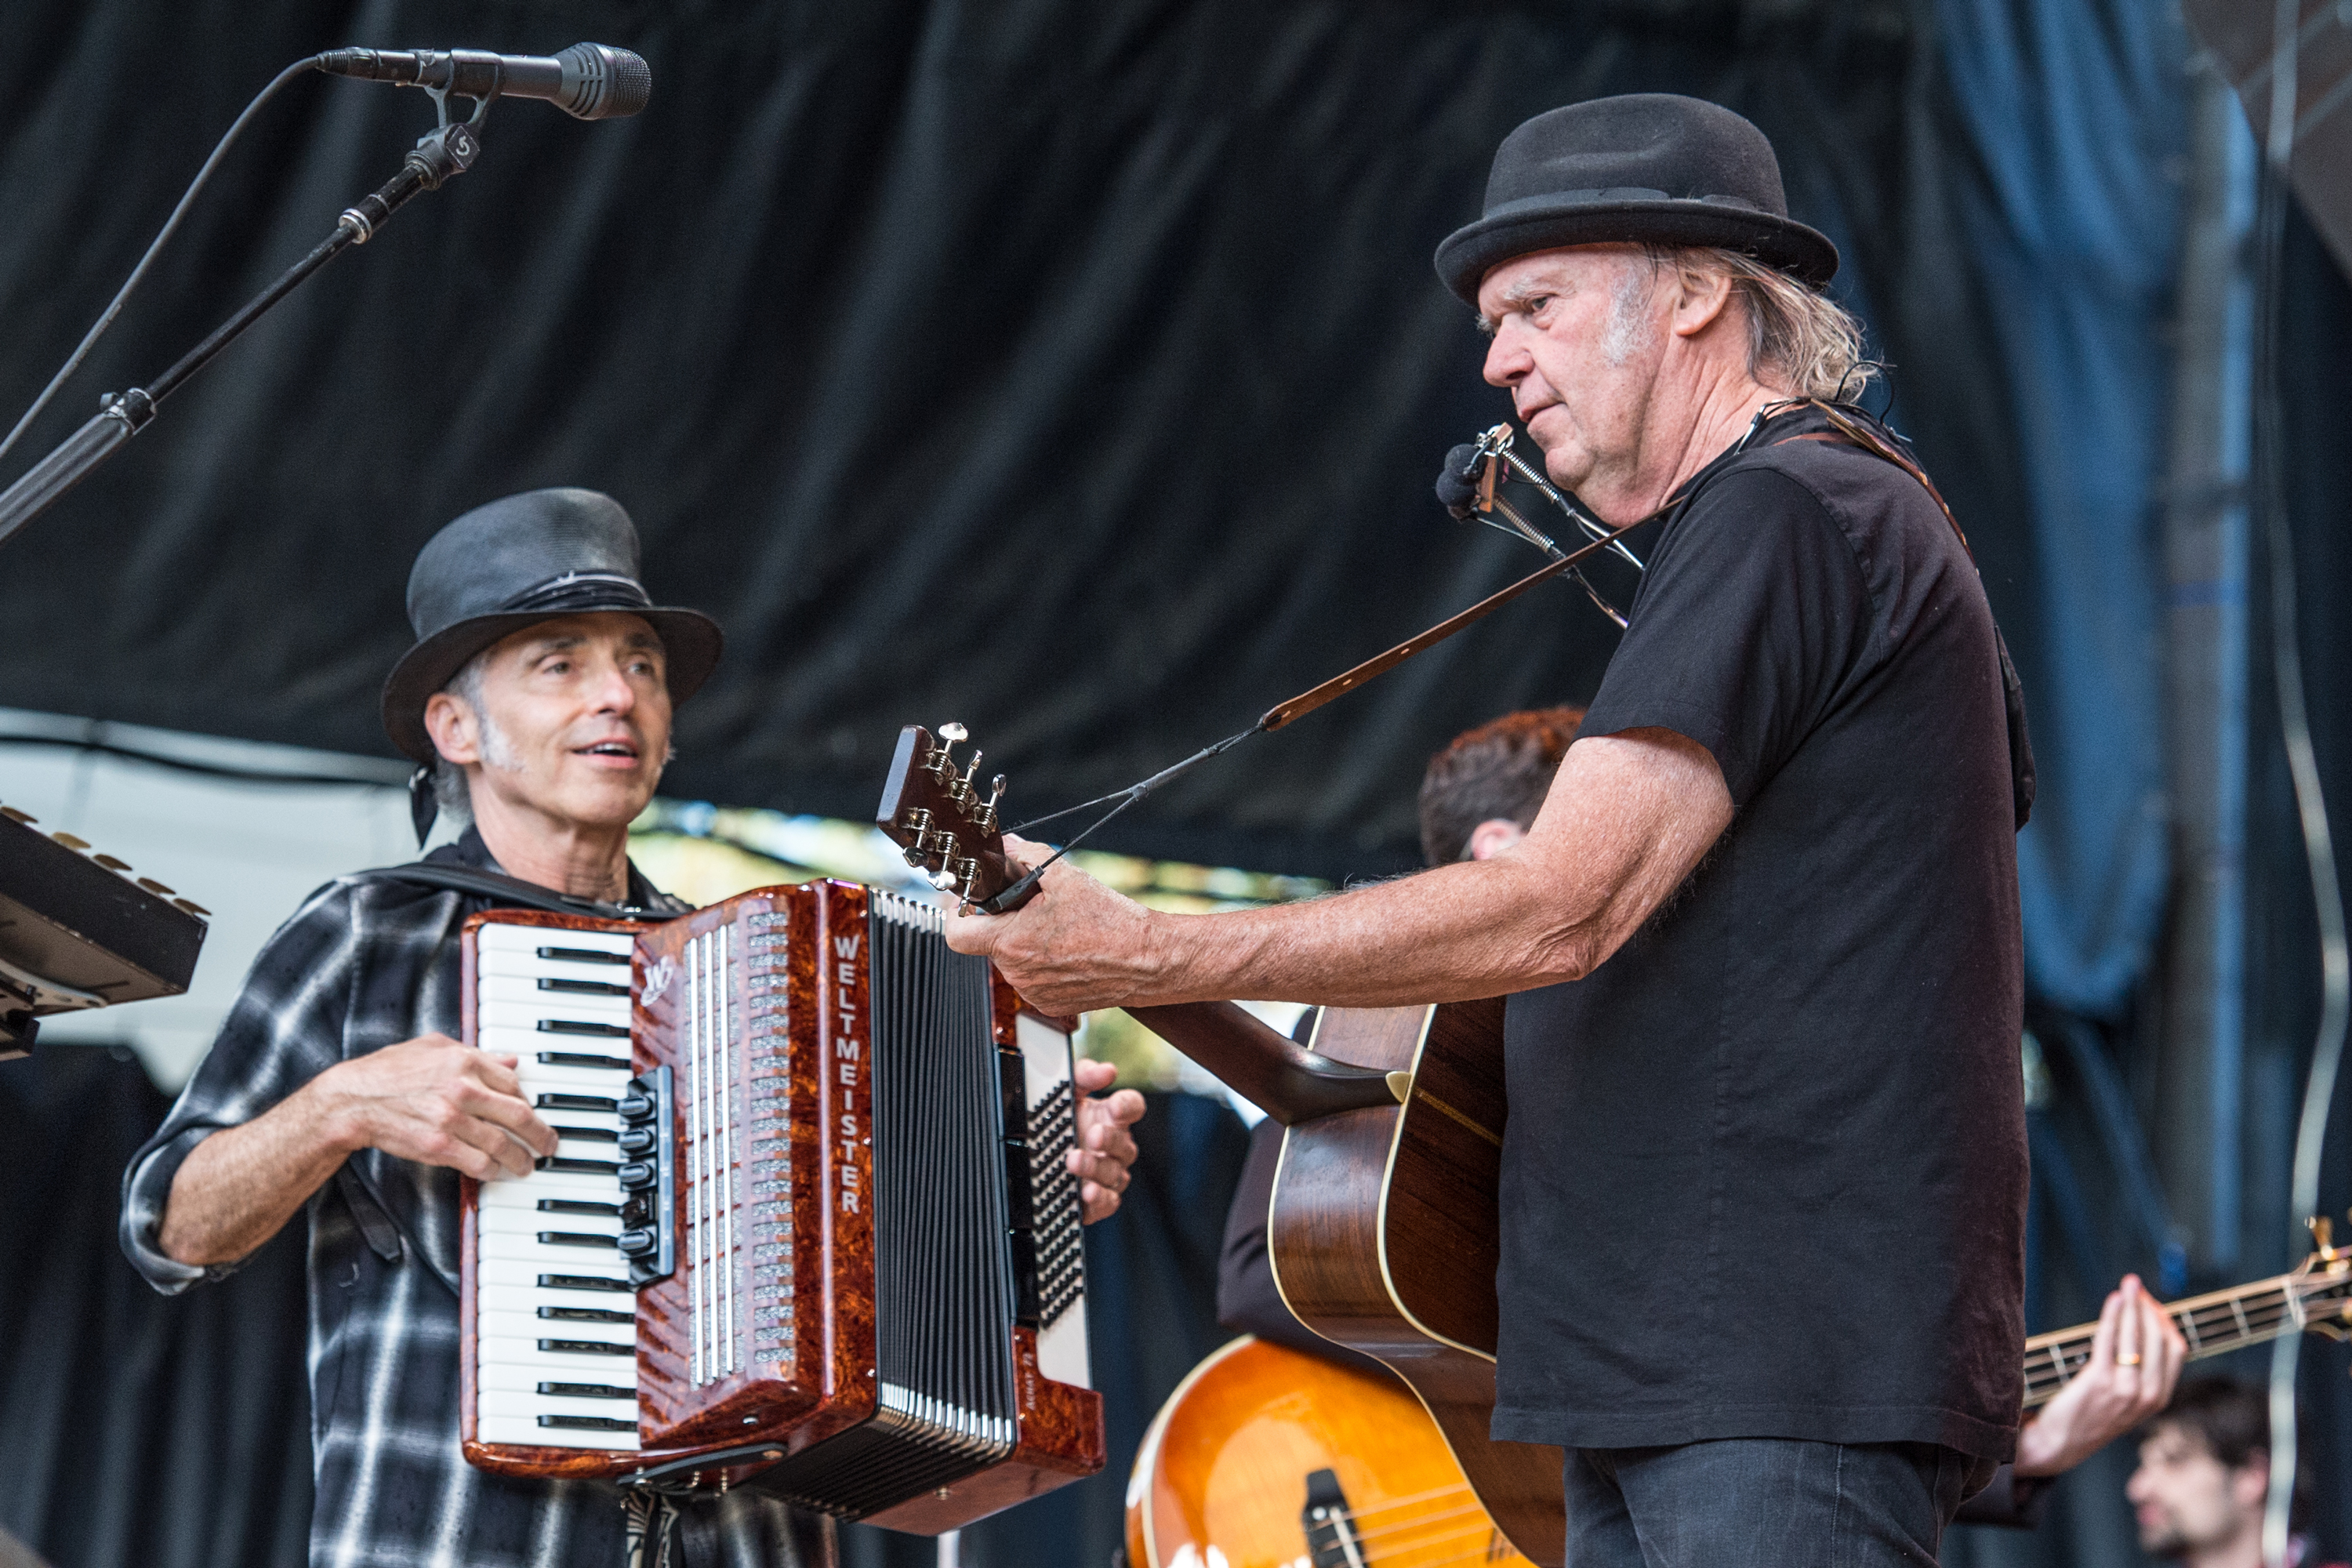 Nils Lofgren, left, and Neil Young perform at the 30th Annual Bridge School Benefit Concert at the Shoreline Amphitheater on Sunday, Oct. 23, 2016, in Mountain View, Calif.